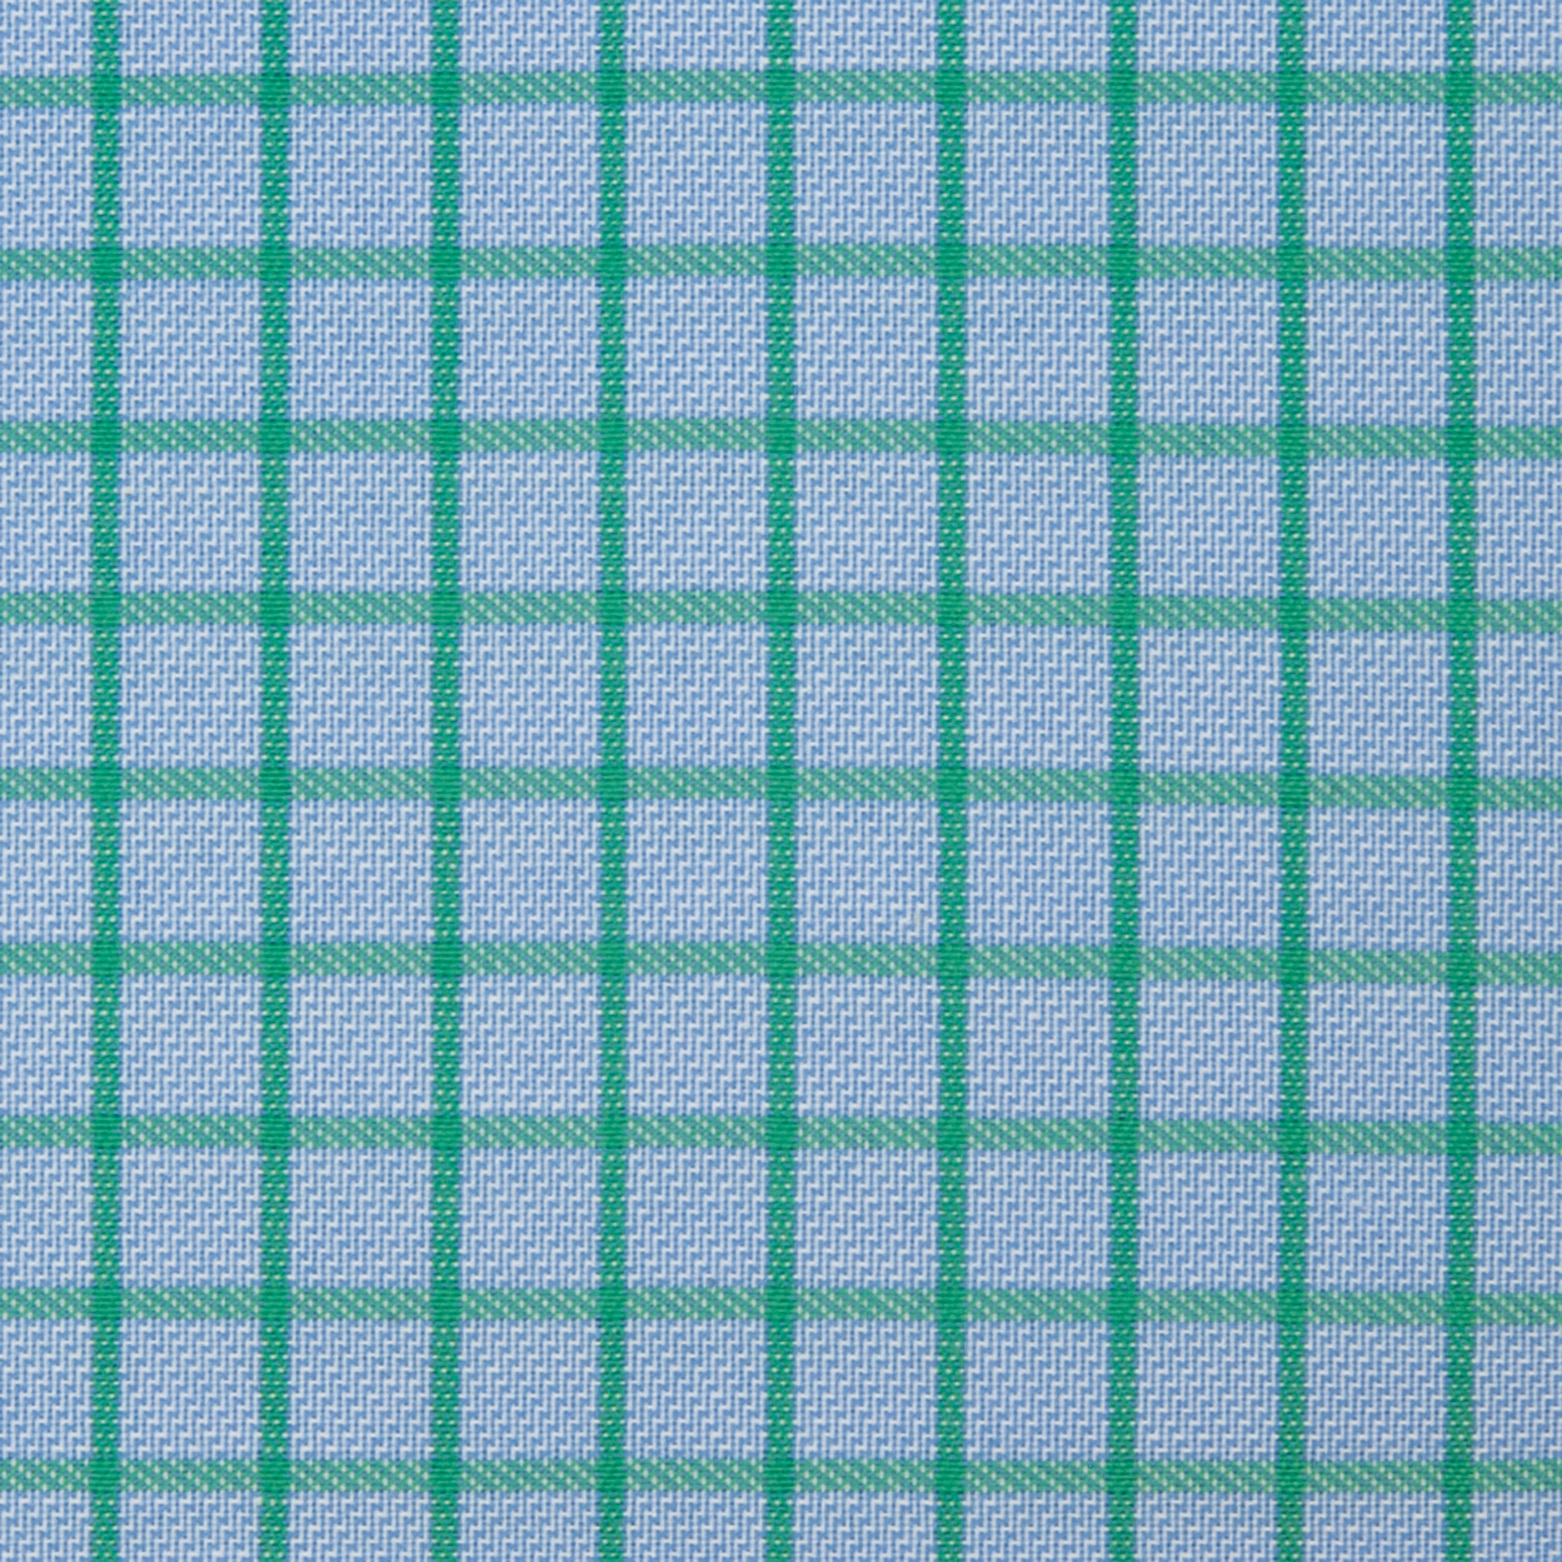 Buy tailor made shirts online - Arturo Collection - Green Check on Blue